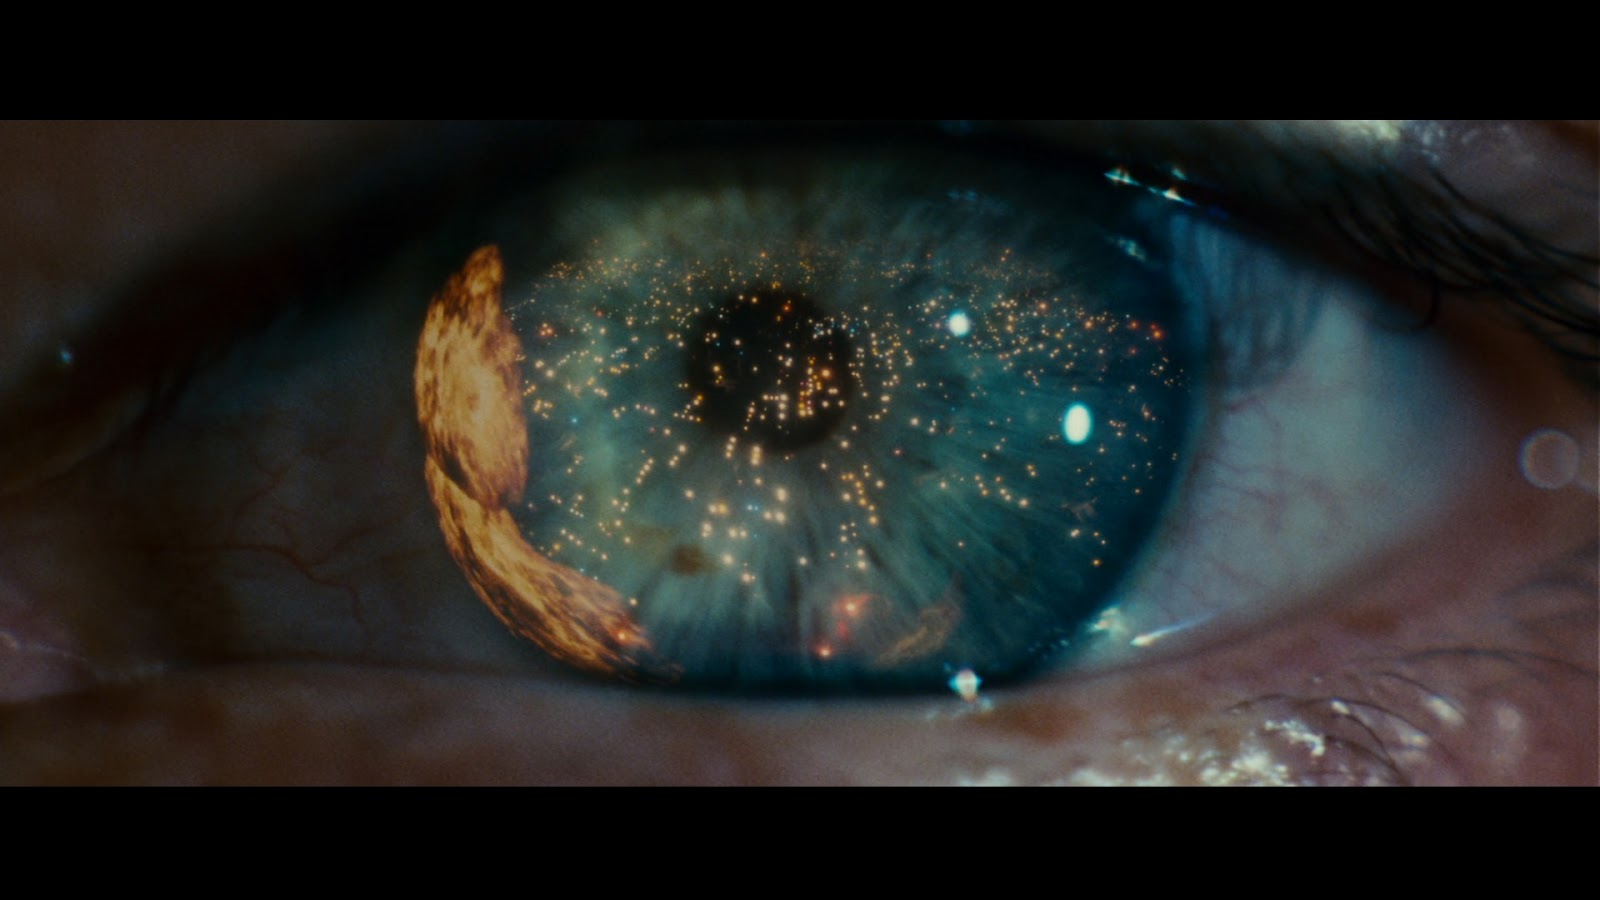 blade runners definition of human If you can't rewatch 'blade runner' before '2049,' read this  in a dystopian  future that raises questions about what it means to be human.